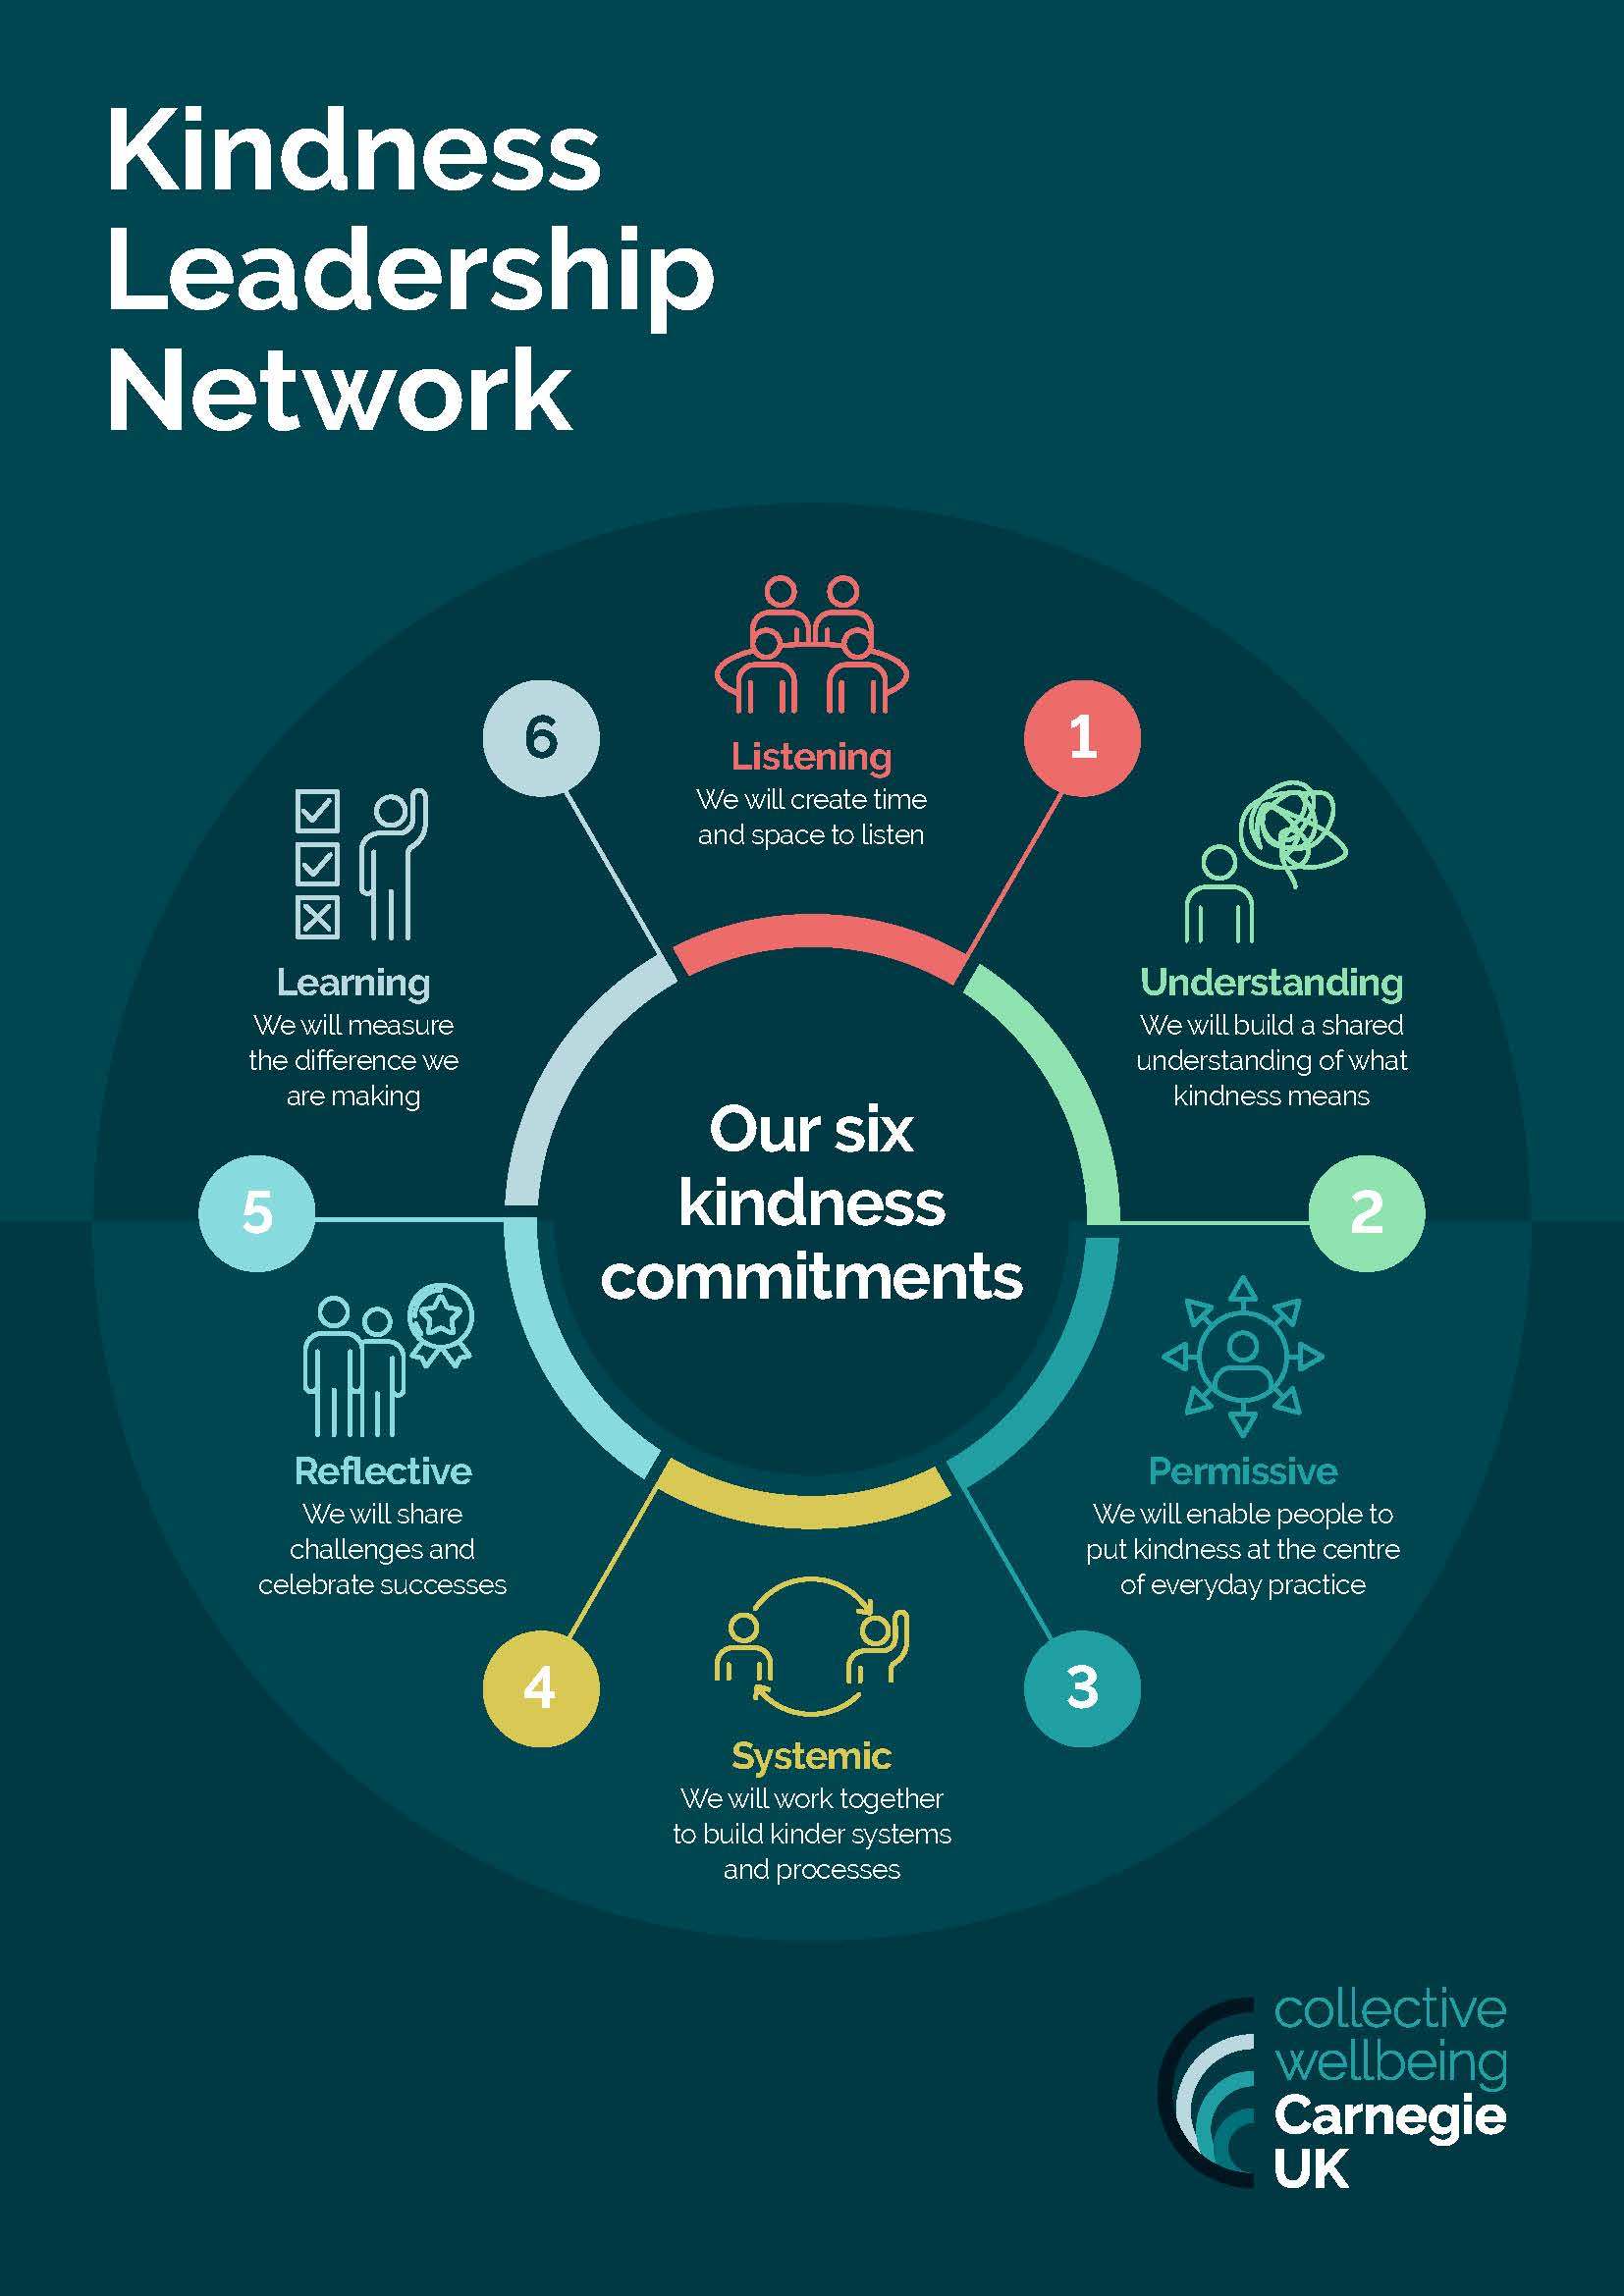 Kindness Leadership Network: Commitment to Kindness